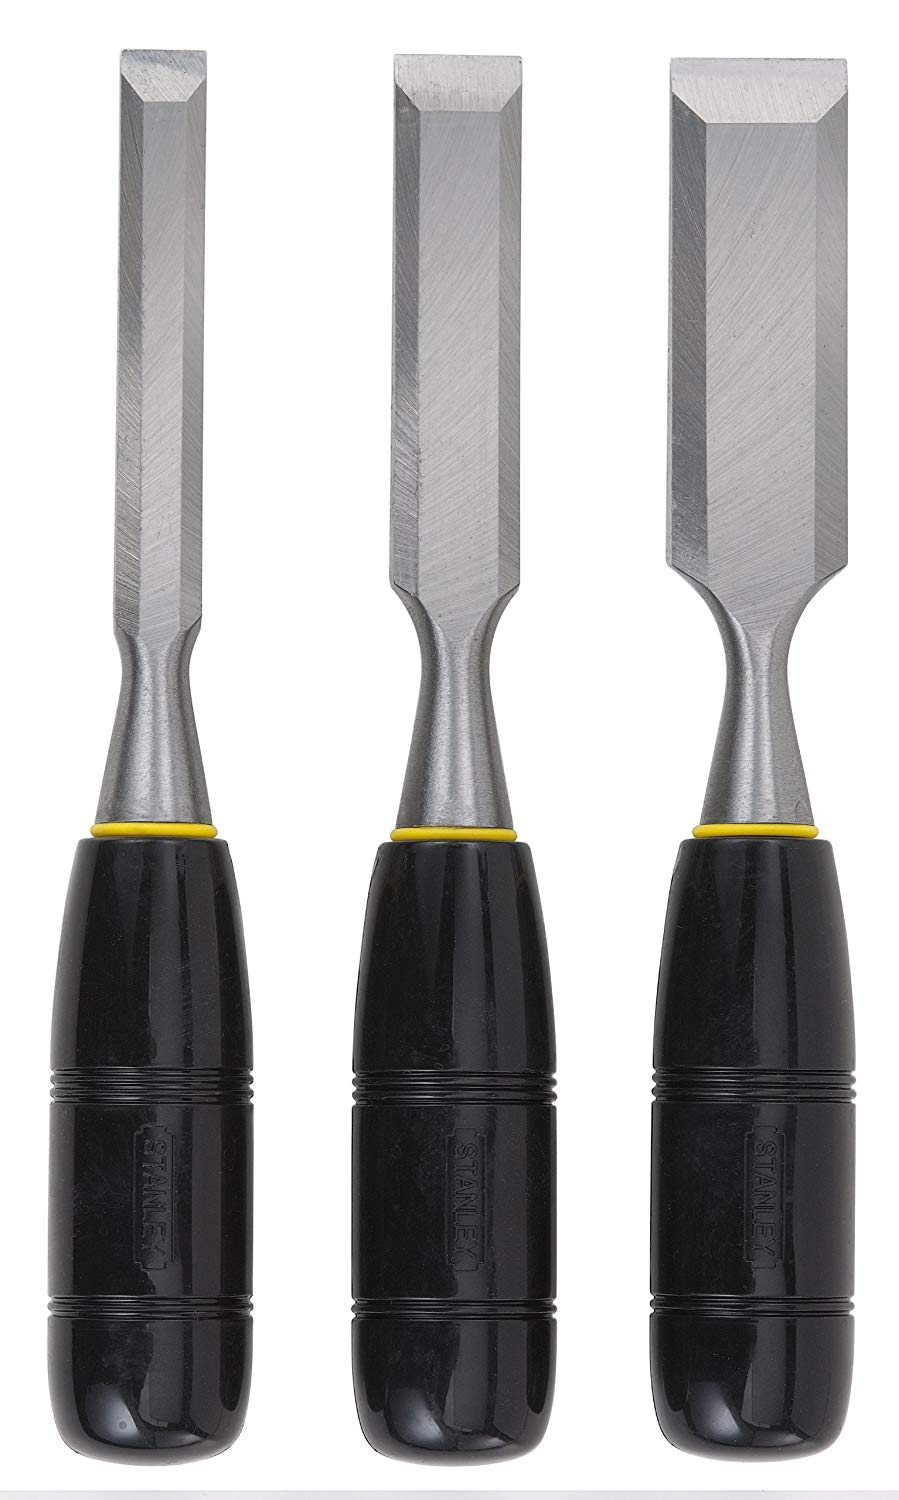 Stanley 16-150 3-Piece Wood Chisels